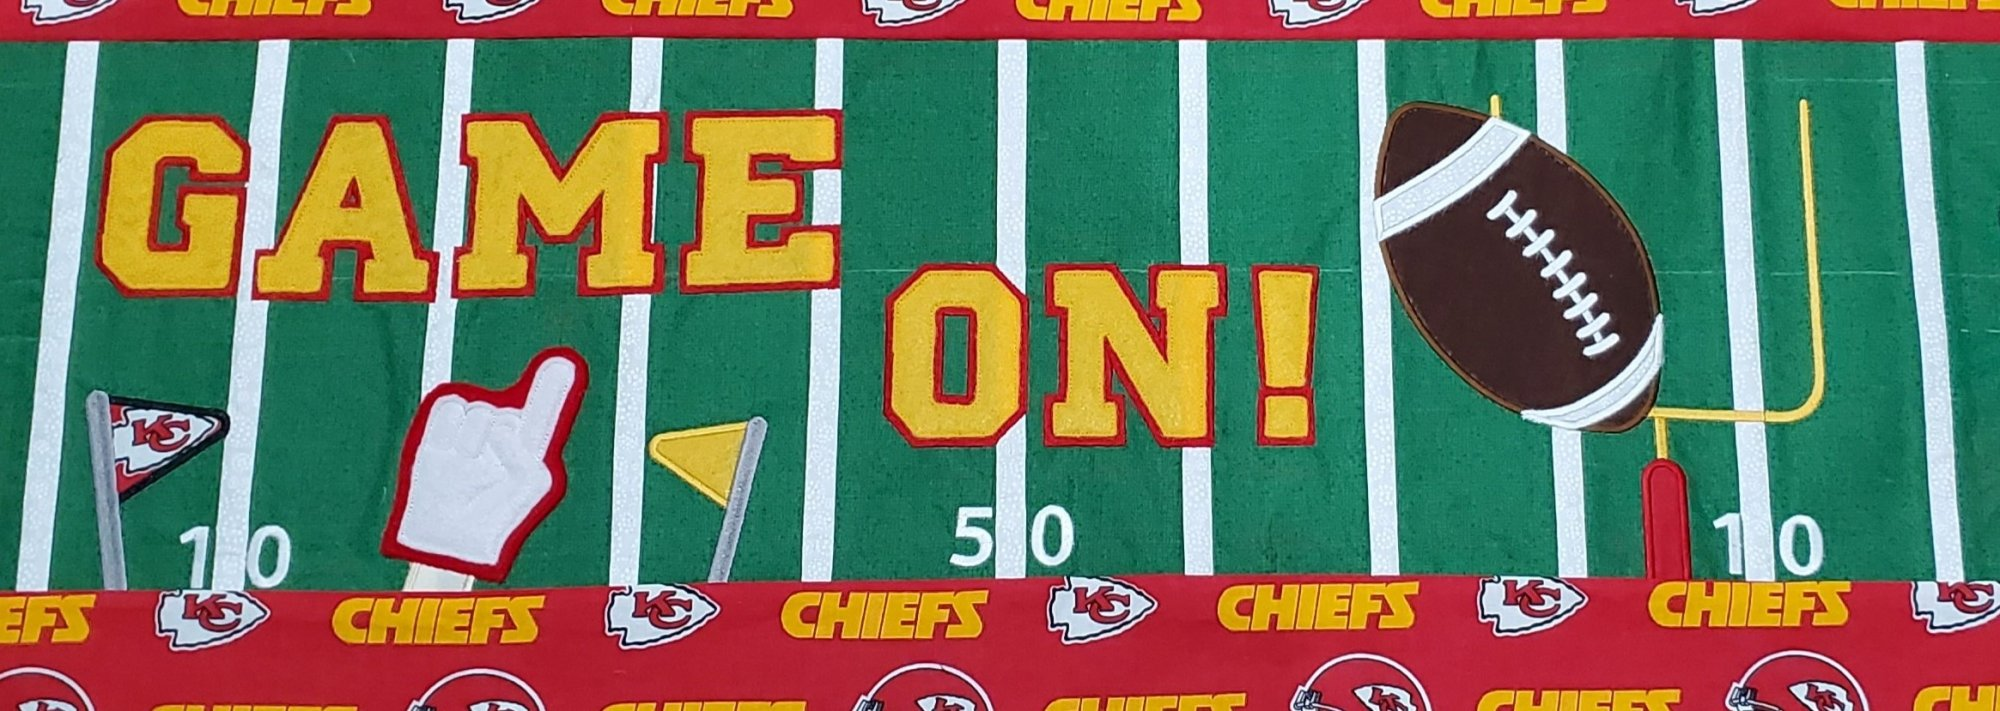 Game On! Football Bench Pillow Fabric Kit - Chiefs